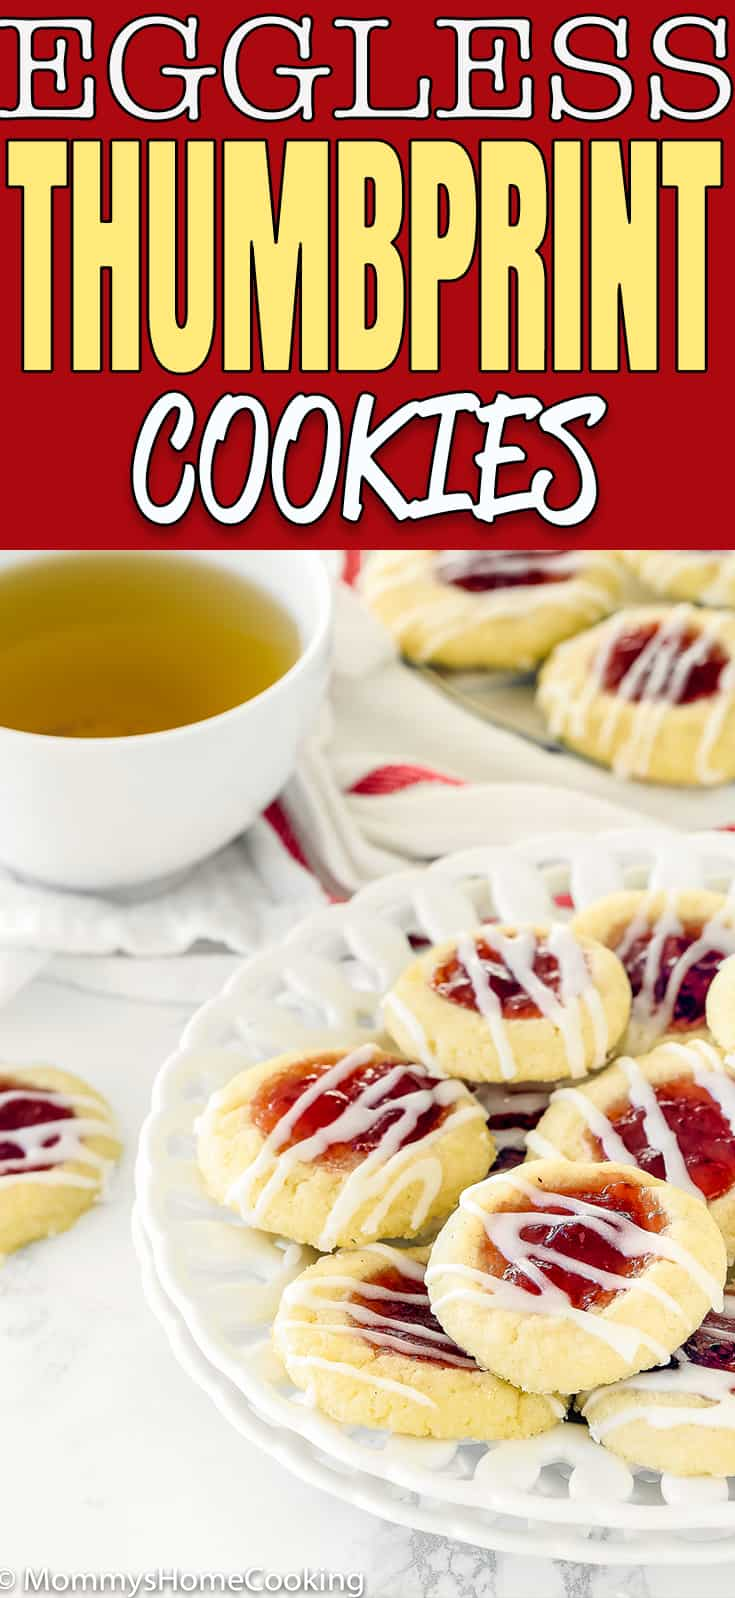 These Eggless Thumbprint Cookies are a wonderful treat for this holiday season! They are gorgeous, delicious, and guaranteed show stoppers at any holiday party. Sharing is highly recommended.